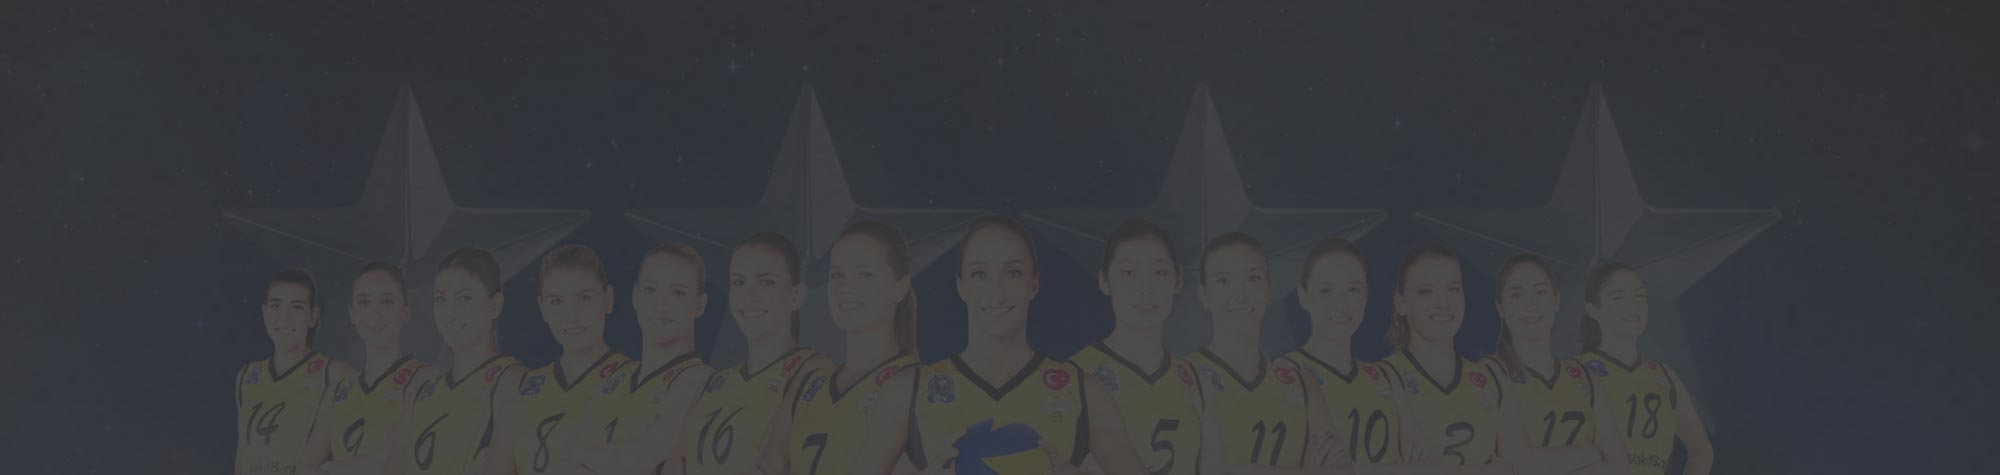 Sports Social Media Content Creation: VakıfBank Volleyball